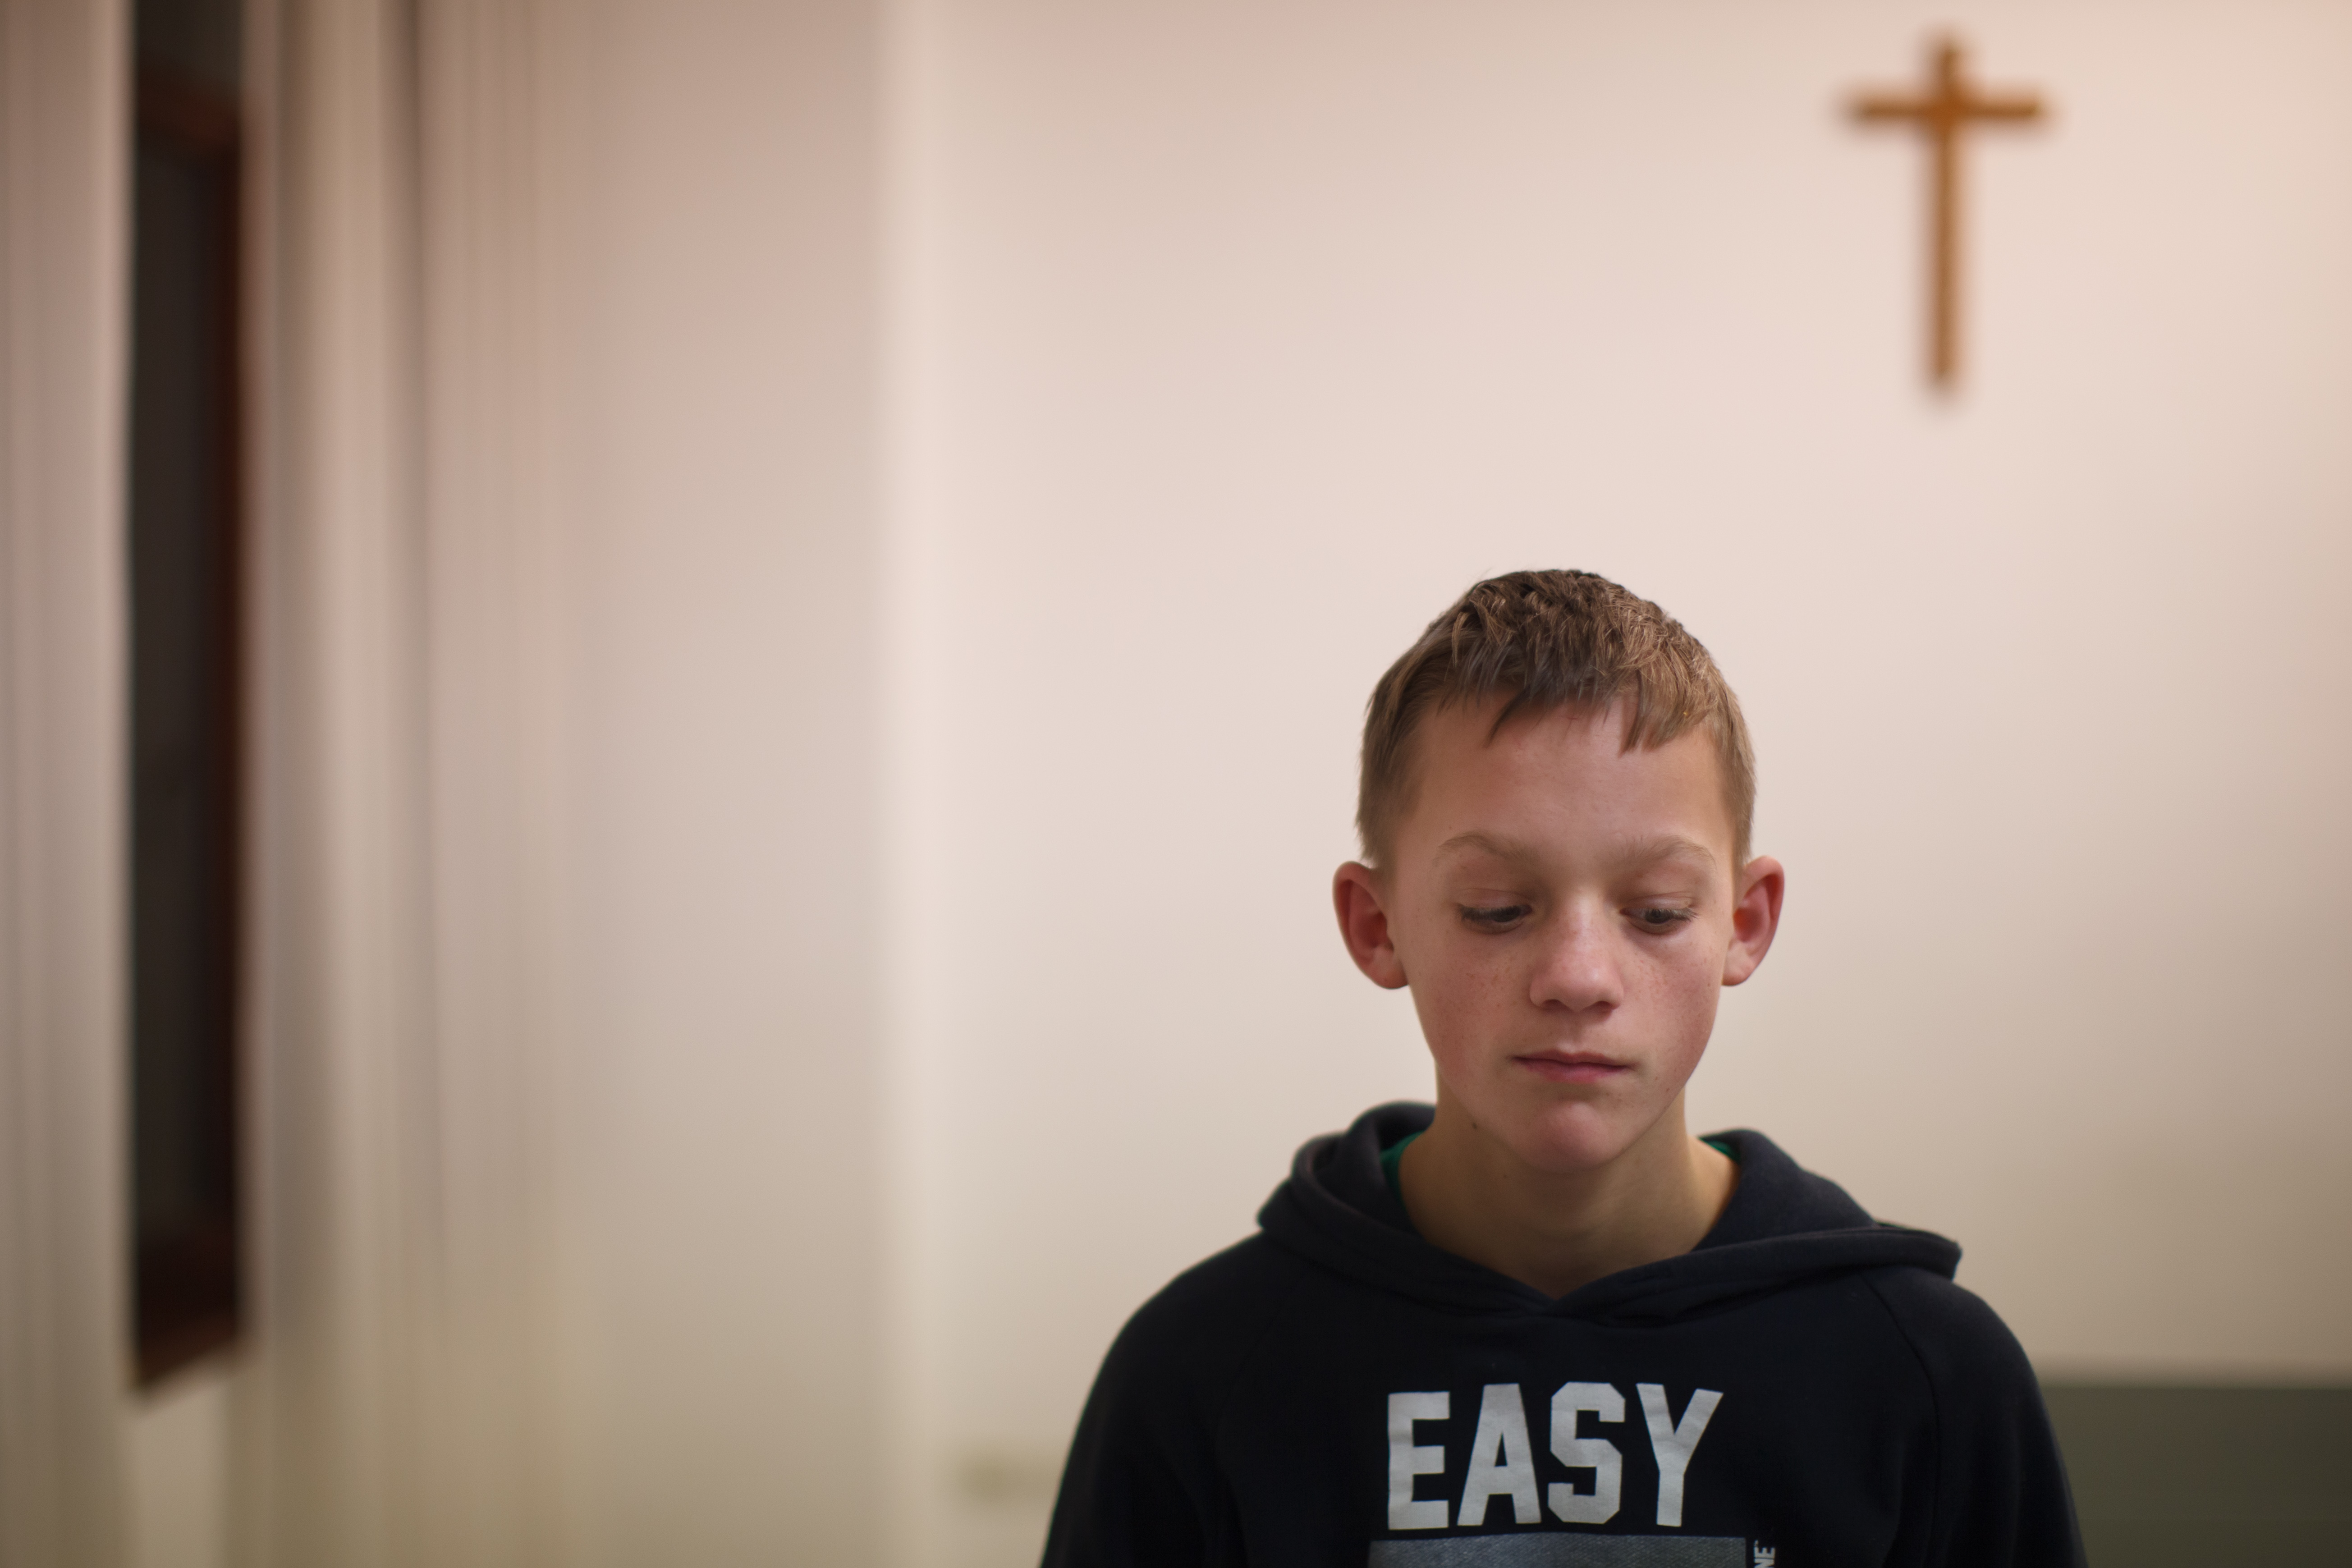 Daniel reflects in front of the cross in a room used for evening prayer